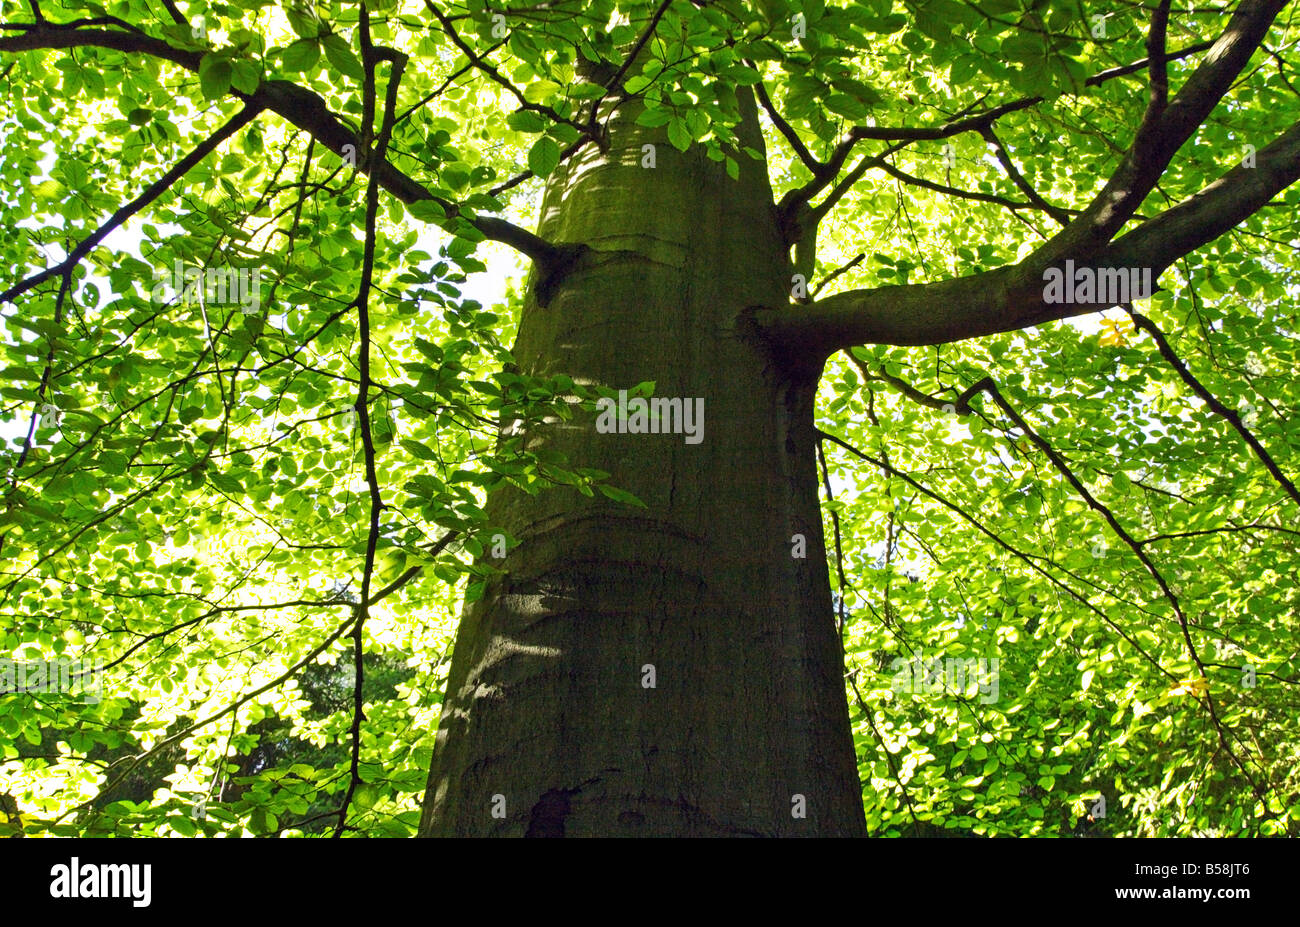 Close-up of a beech tree from below - Stock Image